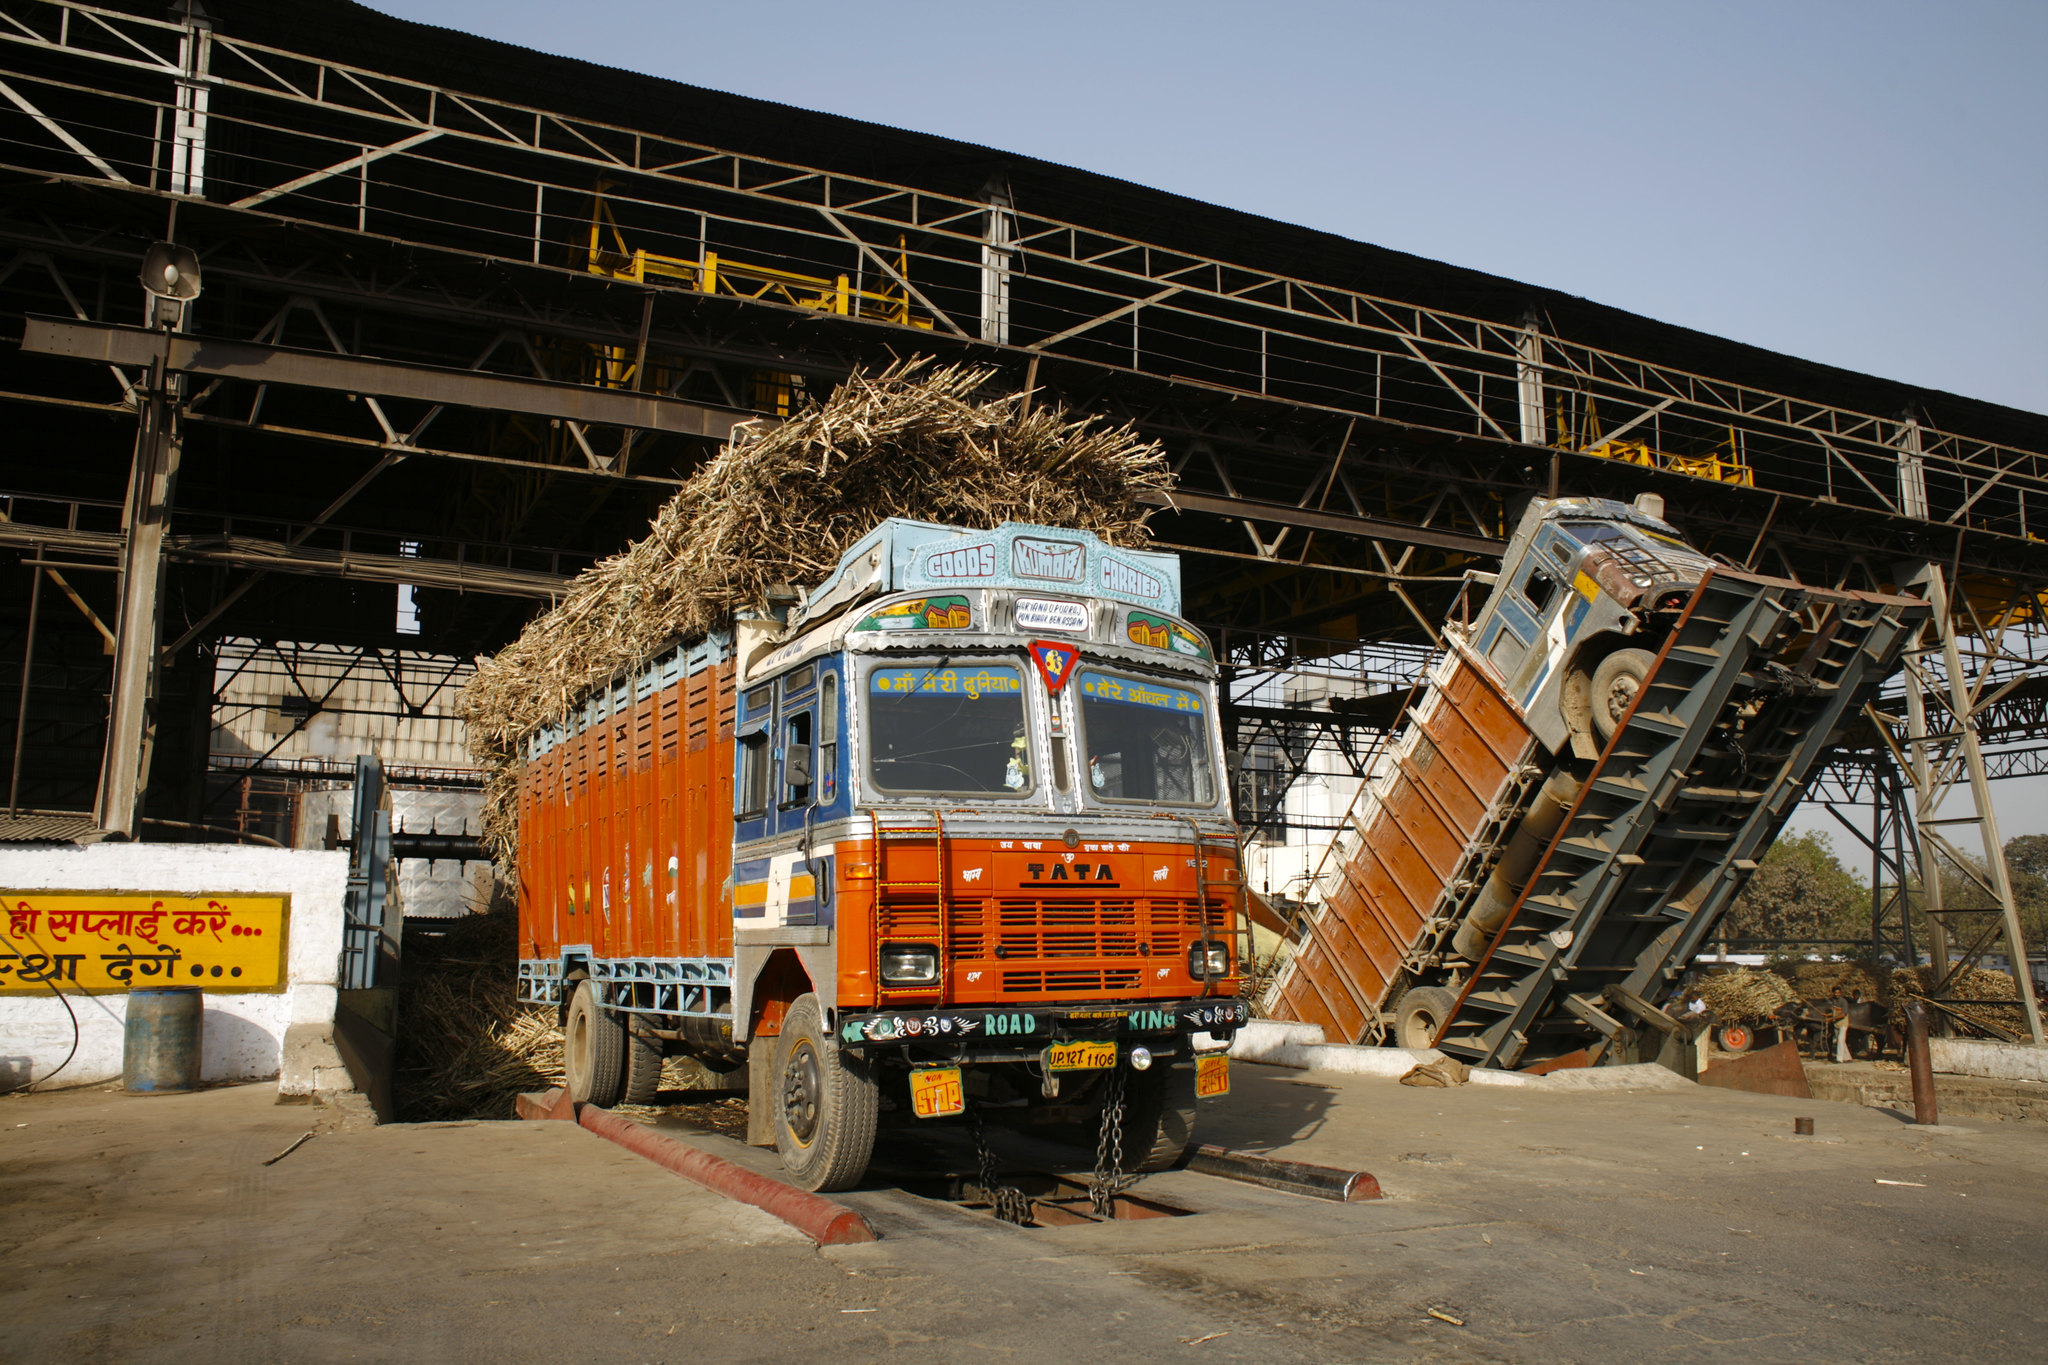 A sugar mill in Uttar Pradesh generating renewable energy from the waste bagasse left over from sugar processing. Photo by Land Rover Our Planet/Flickr.